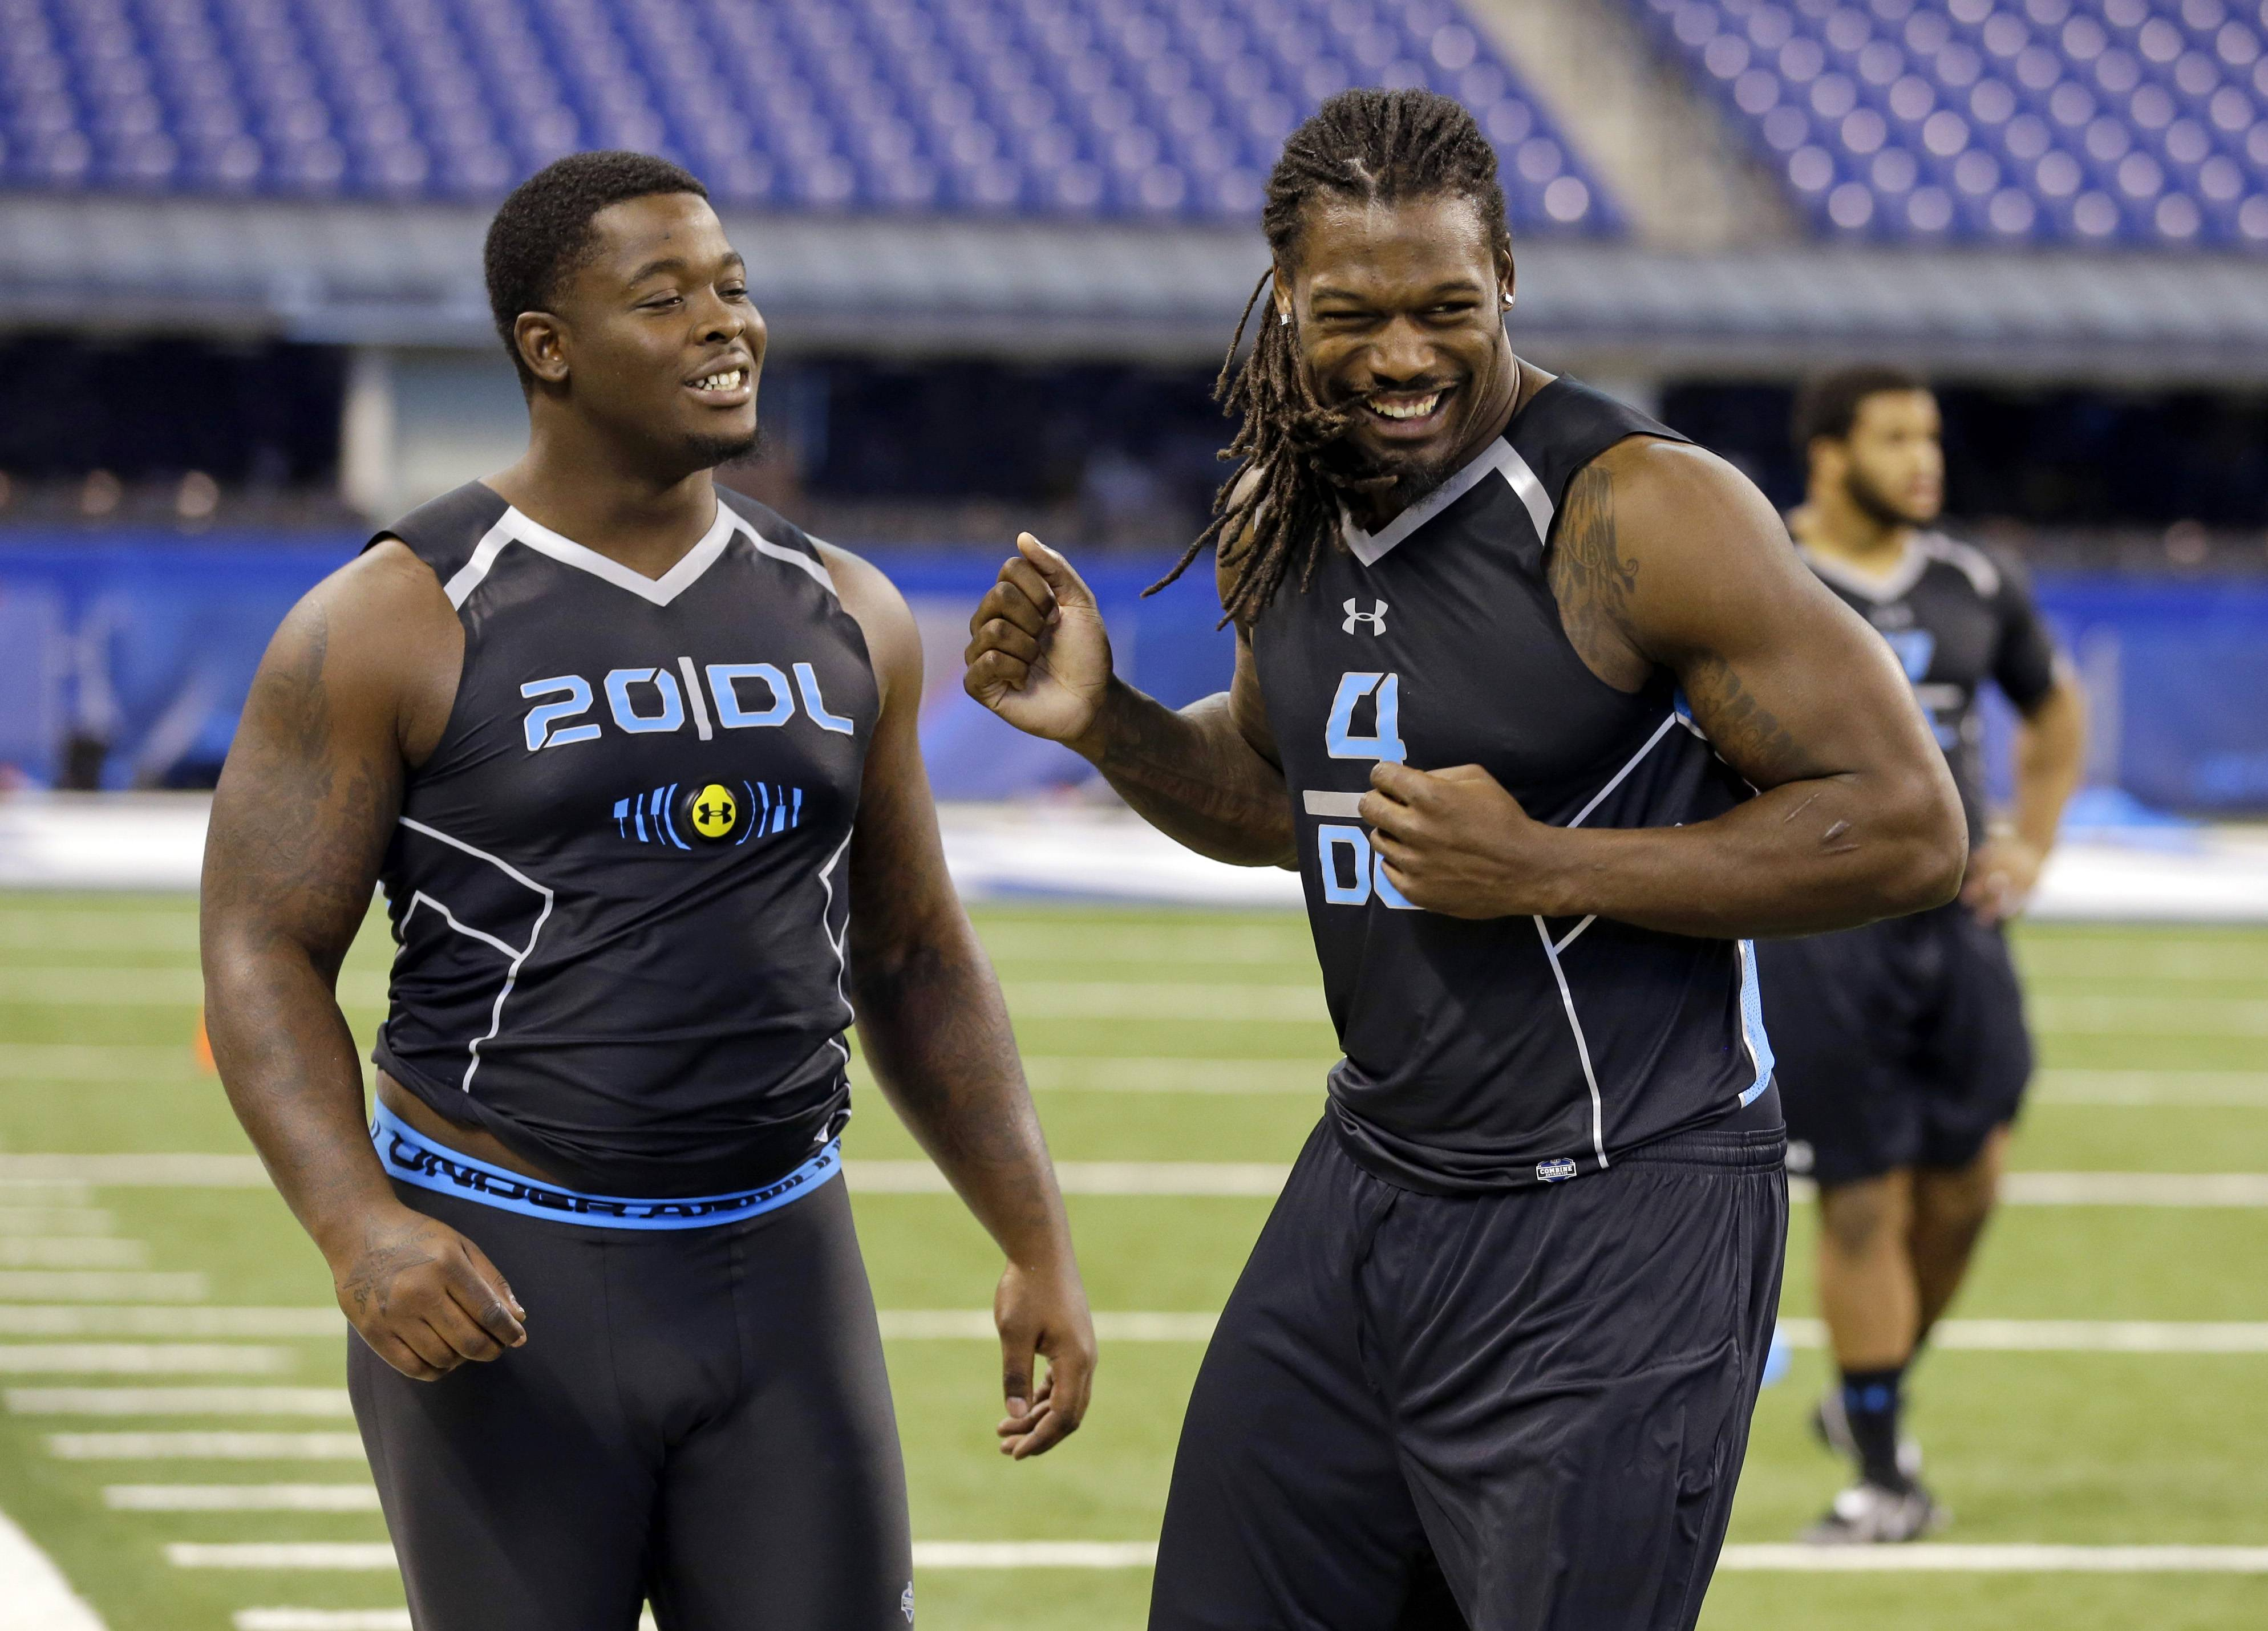 South Carolina defensive lineman Jadeveon Clowney, left, jokes with Florida State defensive lineman Timmy Jernigan during drills at the NFL football scouting combine Monday in Indianapolis.